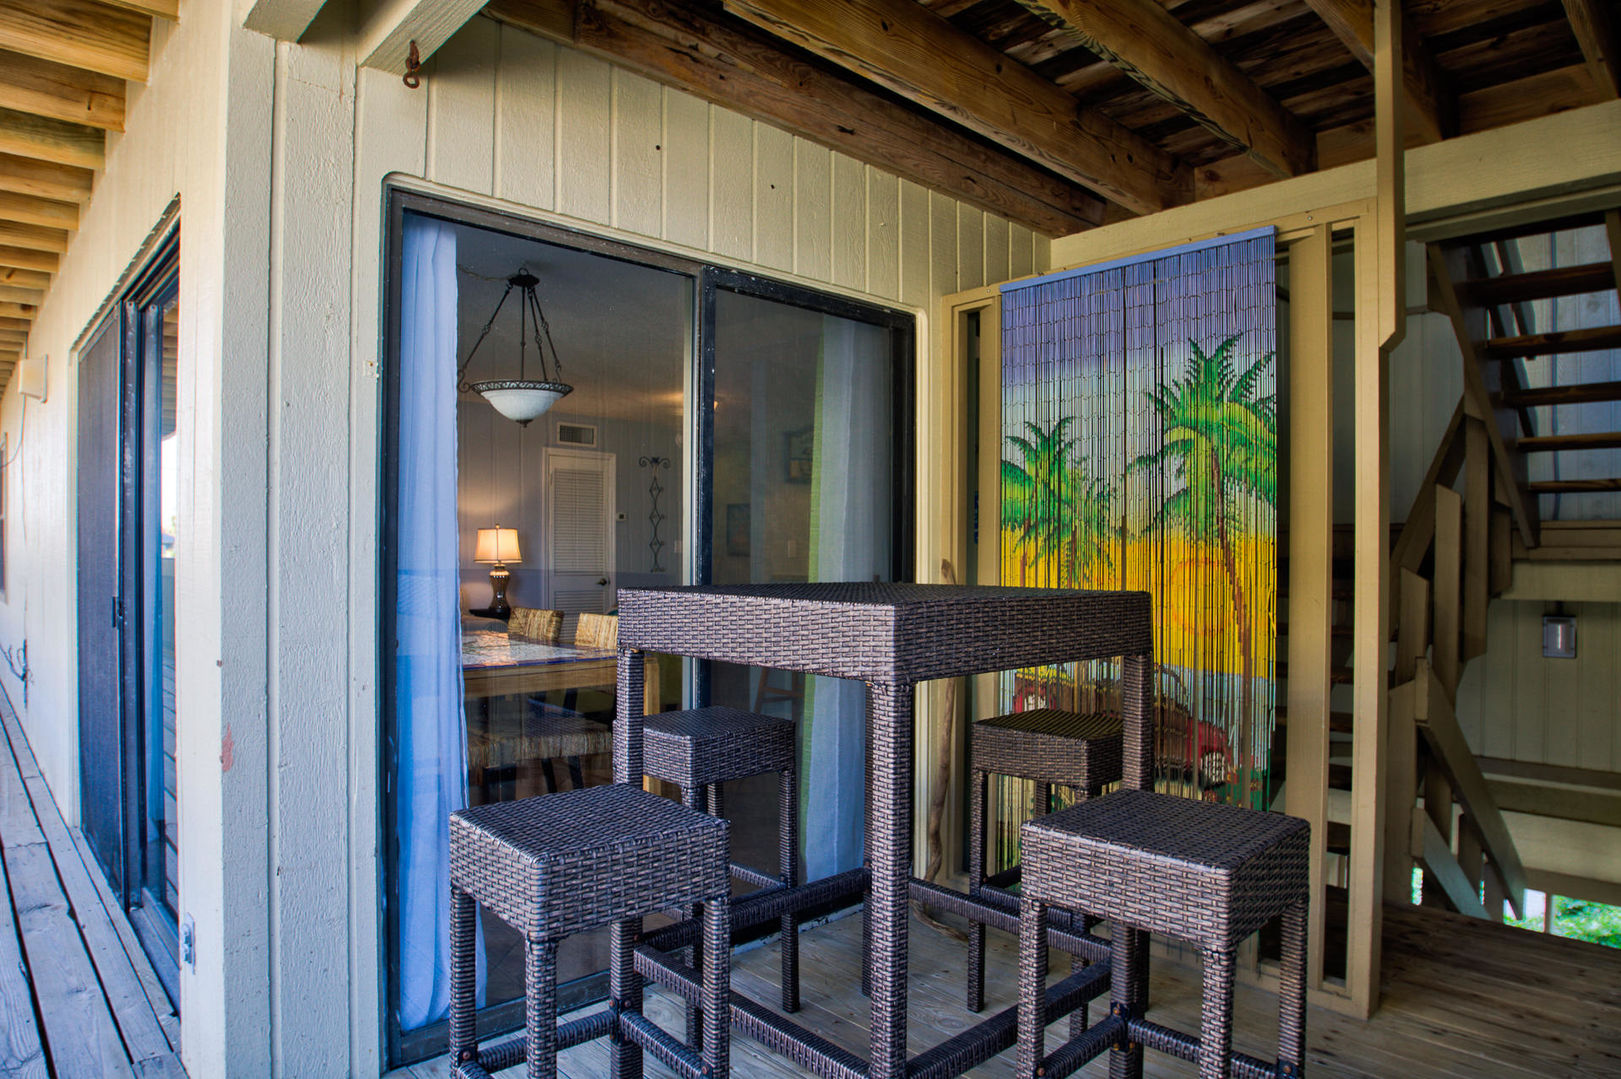 Covered Patio with Outdoor Seating in our Gulf Shores, AL Vacation Condo